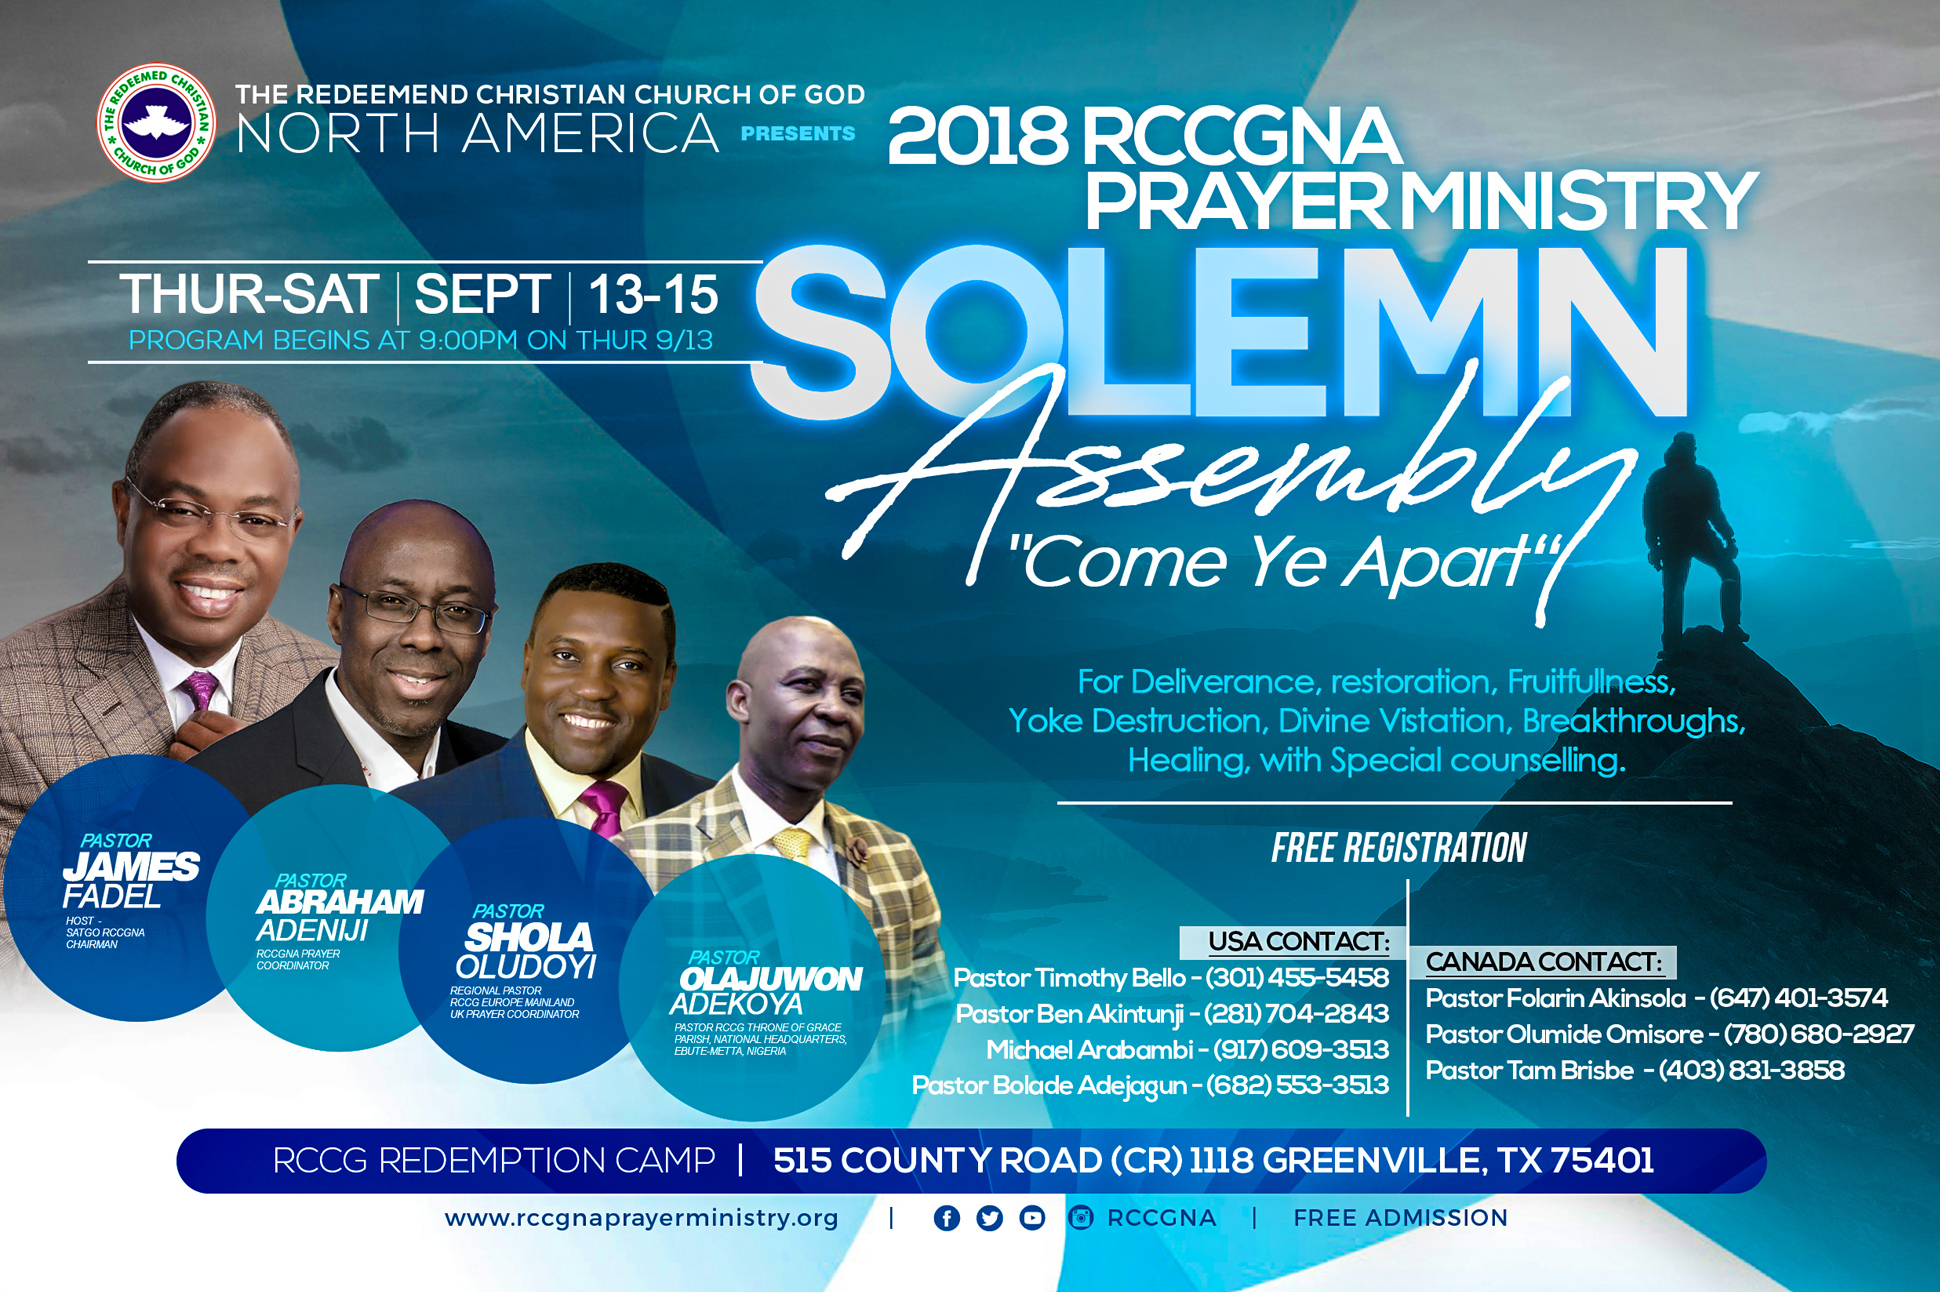 Prayer Ministry Upcoming Events 2018 Rccg North America Prayer Ministry Solemn